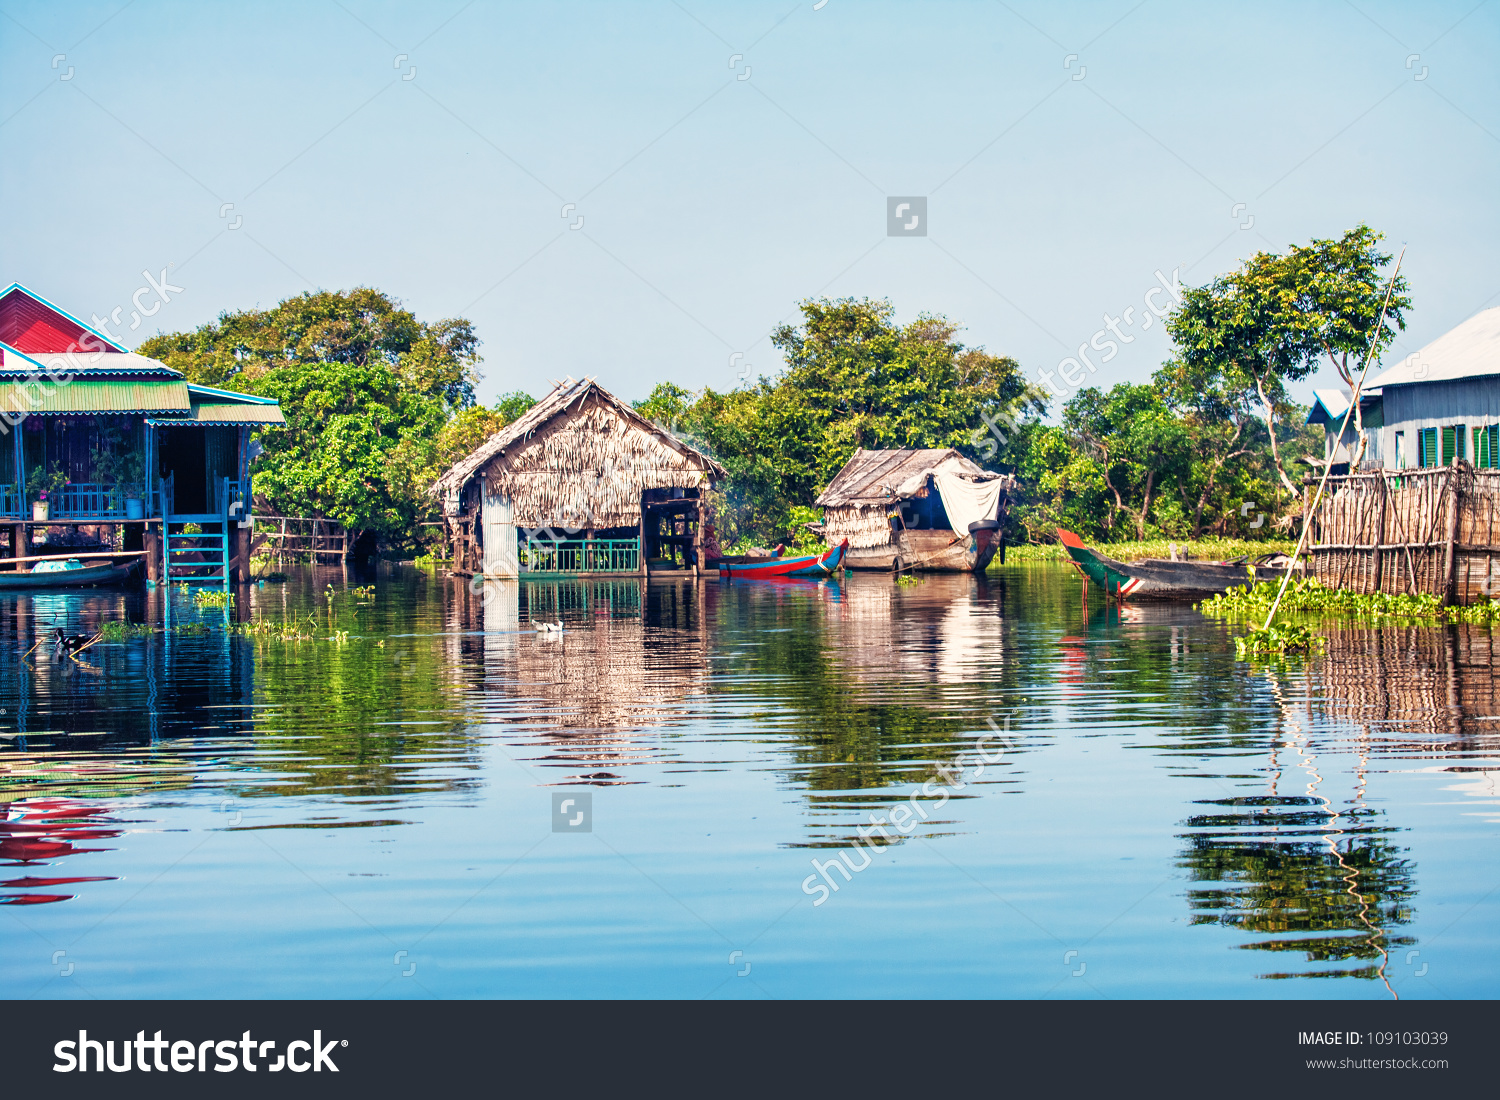 The Village On The Water. Tonle Sap Lake. Cambodia Stock Photo.